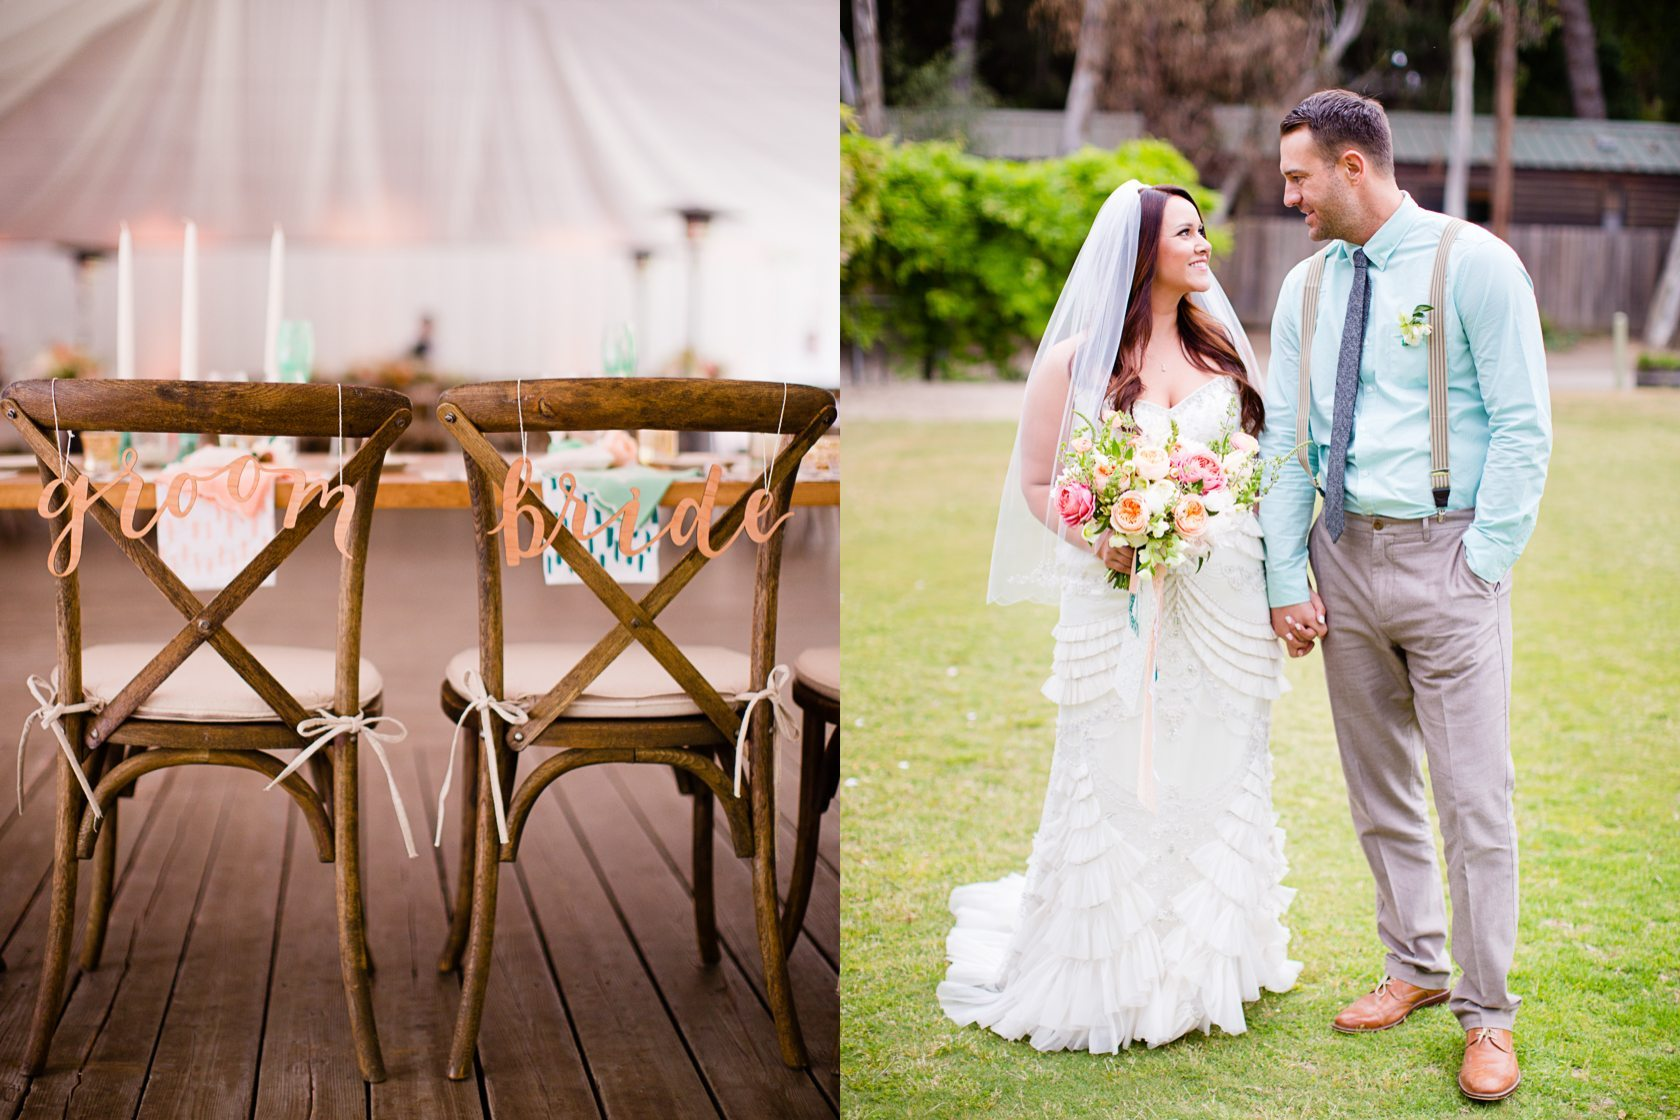 The_Printed_Palette_Wedding_at_Calamigos_Ranch_017.jpg